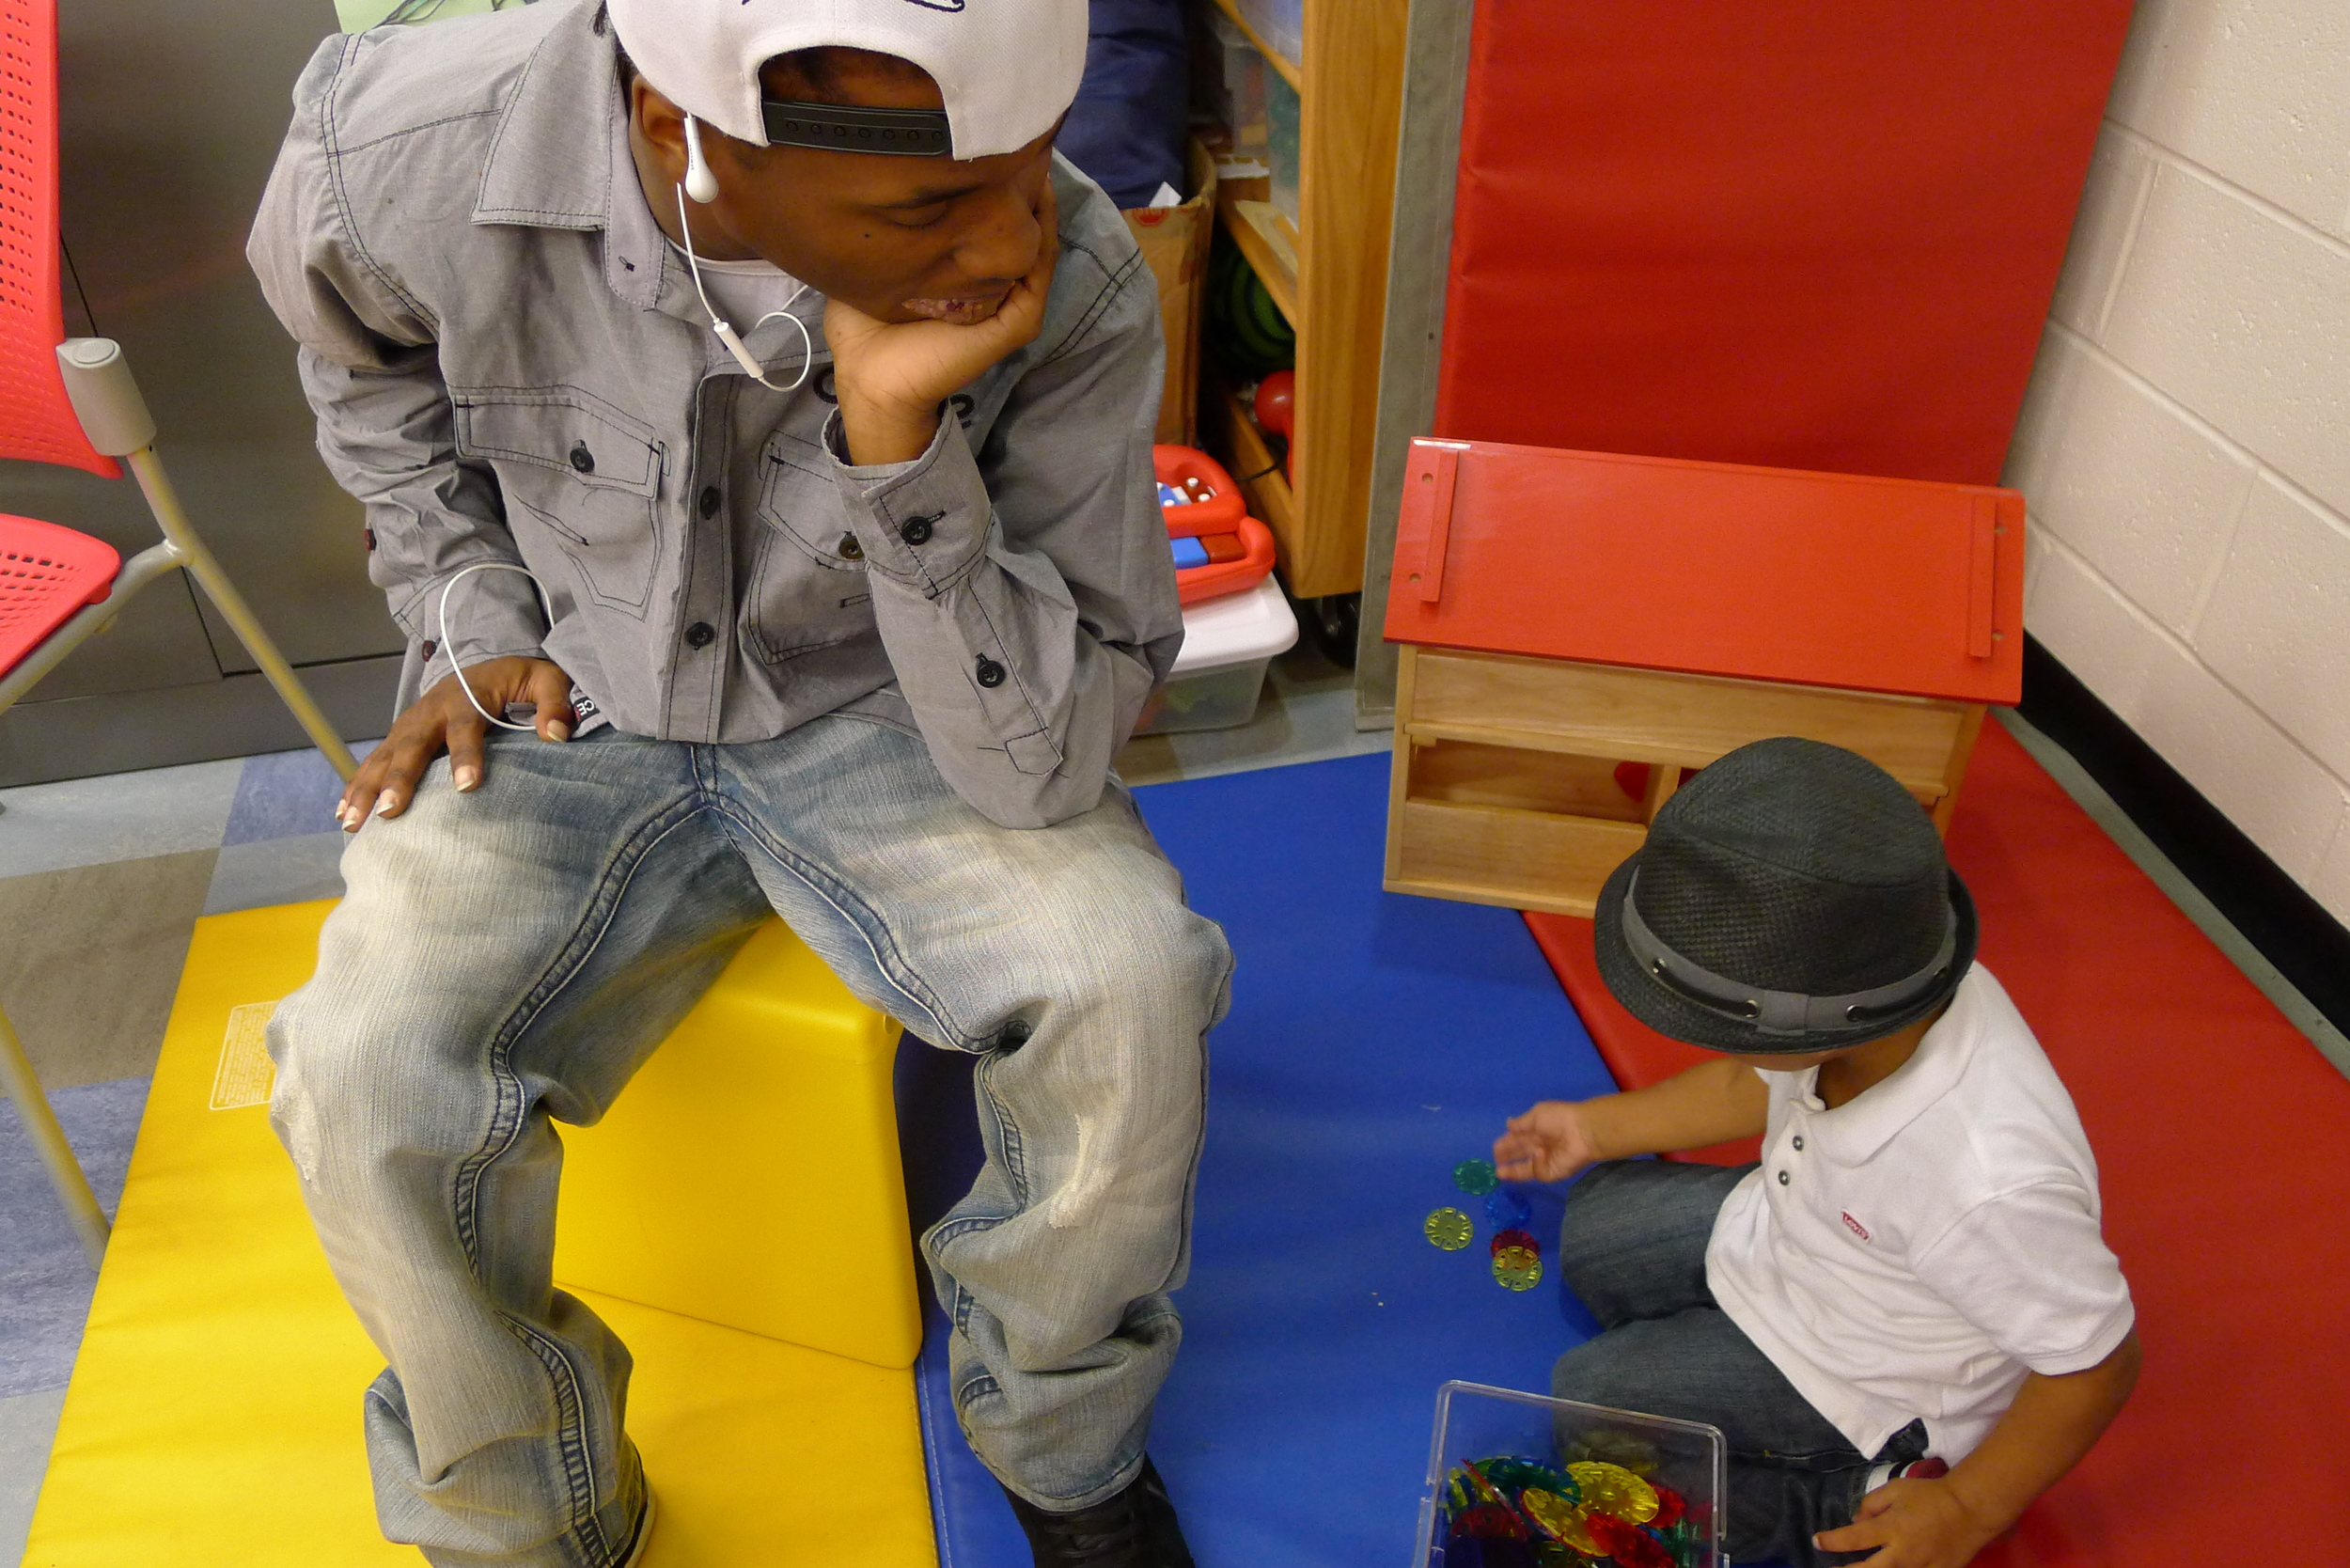 Rasheed of RHI looks on as his 2-year-old son plays, during our Sept round table meeting.